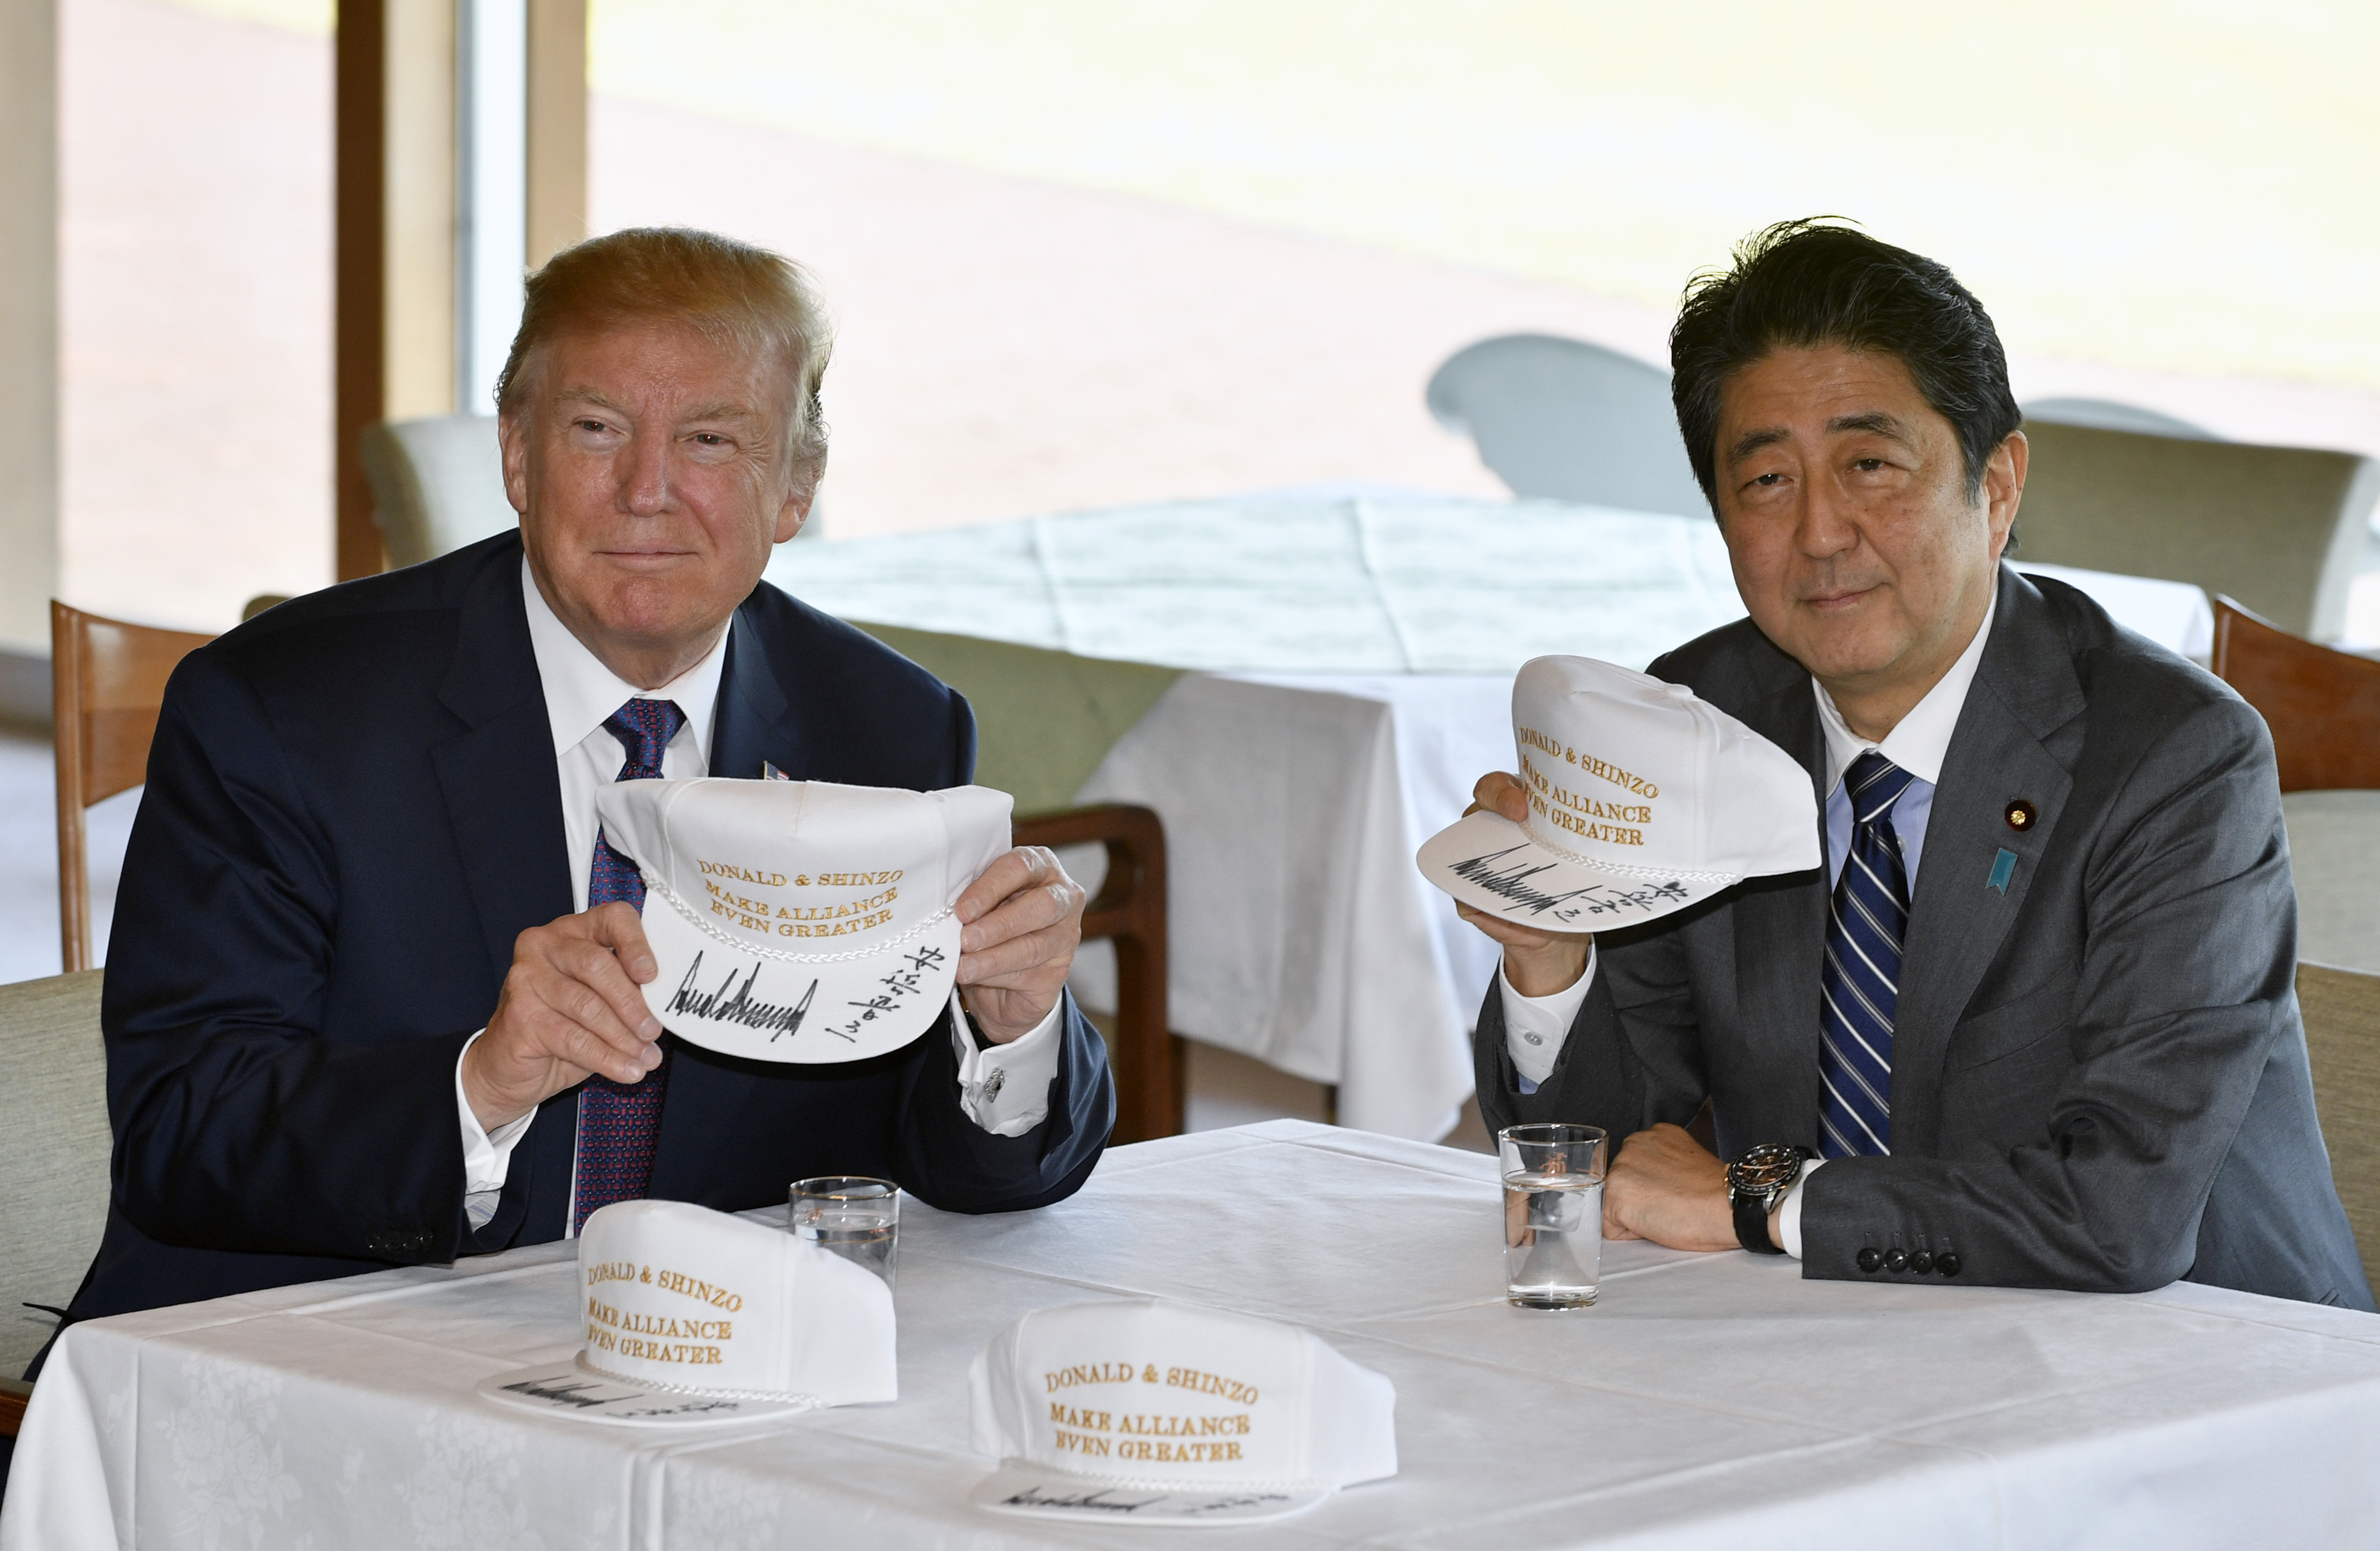 US President Donald J. Trump (L) and Japanese Prime Minister Shinzo Abe (R) pose after they signed hats reading 'Donald and Shinzo, Make Alliance Even Greater' at the Kasumigaseki Country Club in Kawagoe, Japan, 05 November 2017. Trump's visit to Japan is the first stop of his 12-day tour of Asia. After Japan, Trump will visit South Korea, China, Vietnam and the Philippines.